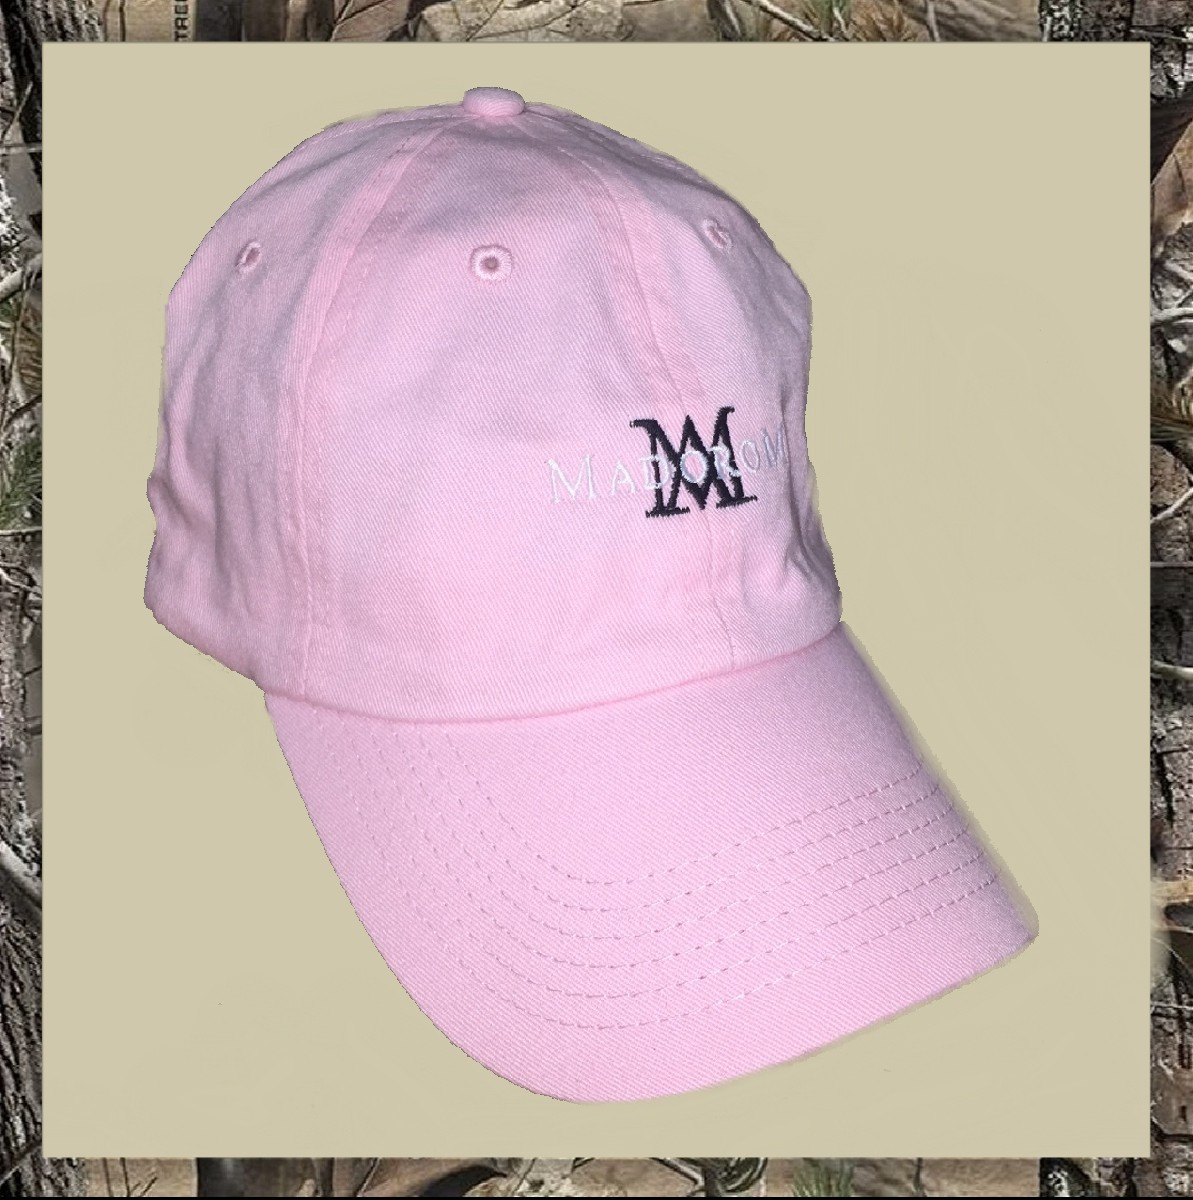 MadoroM Pink Hat Product Image